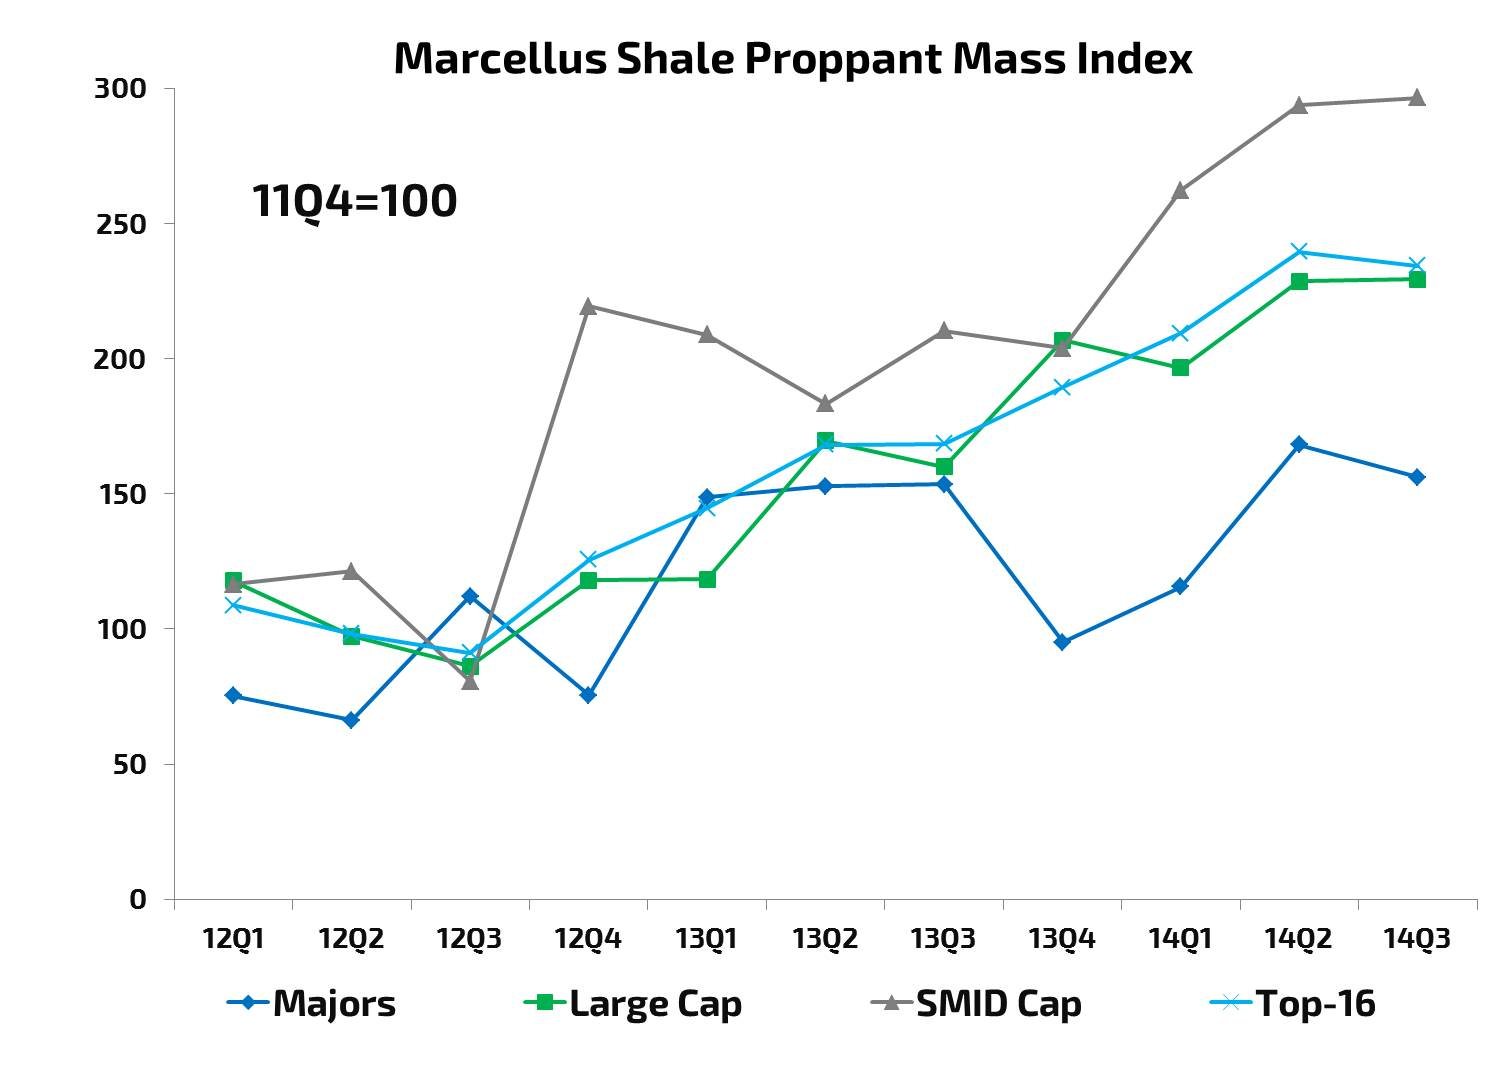 Marcellus-Average-Proppant-Mass-Index-12Q1-14Q3